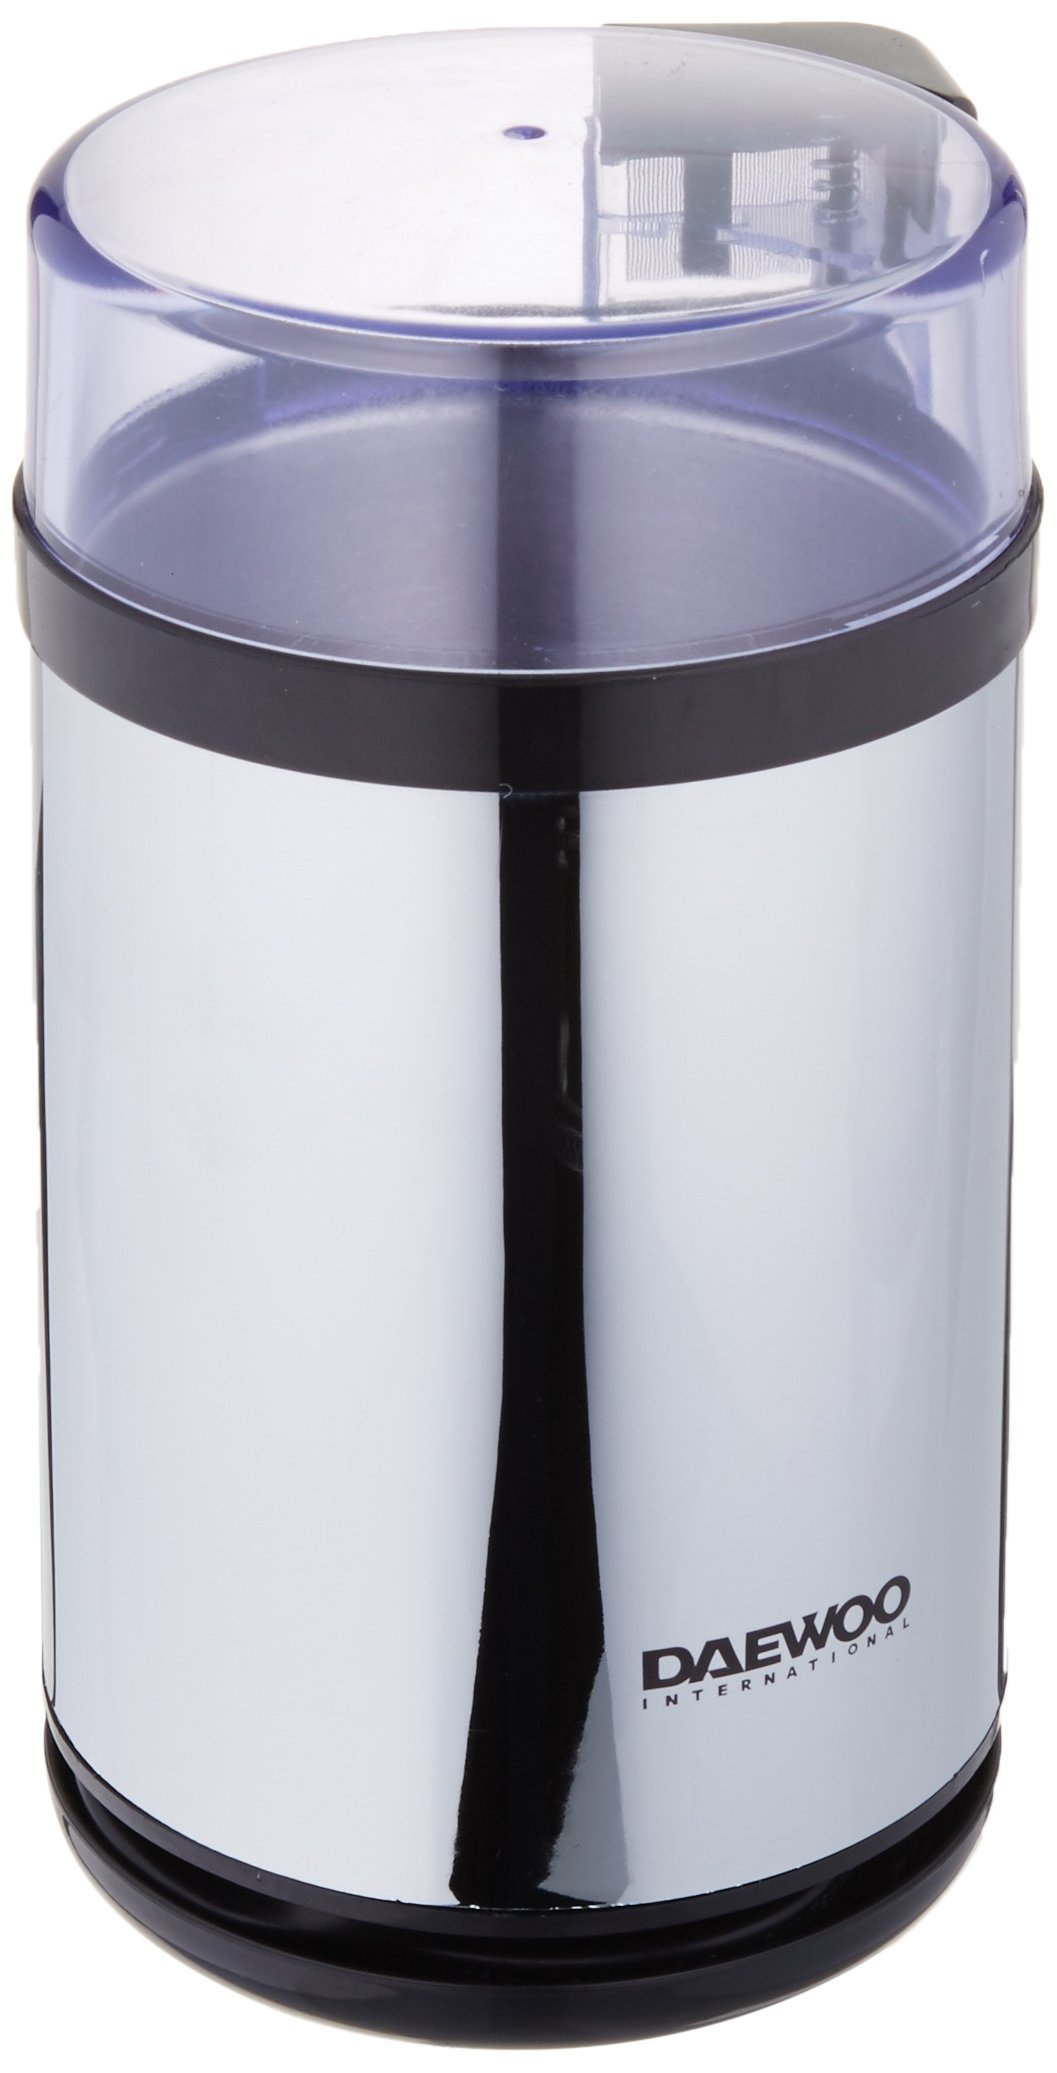 Daewoo DI-9365 180-watt 85gm Capacity Coffee Grinder, 220 to 240 Volts by Daewoo (Image #1)